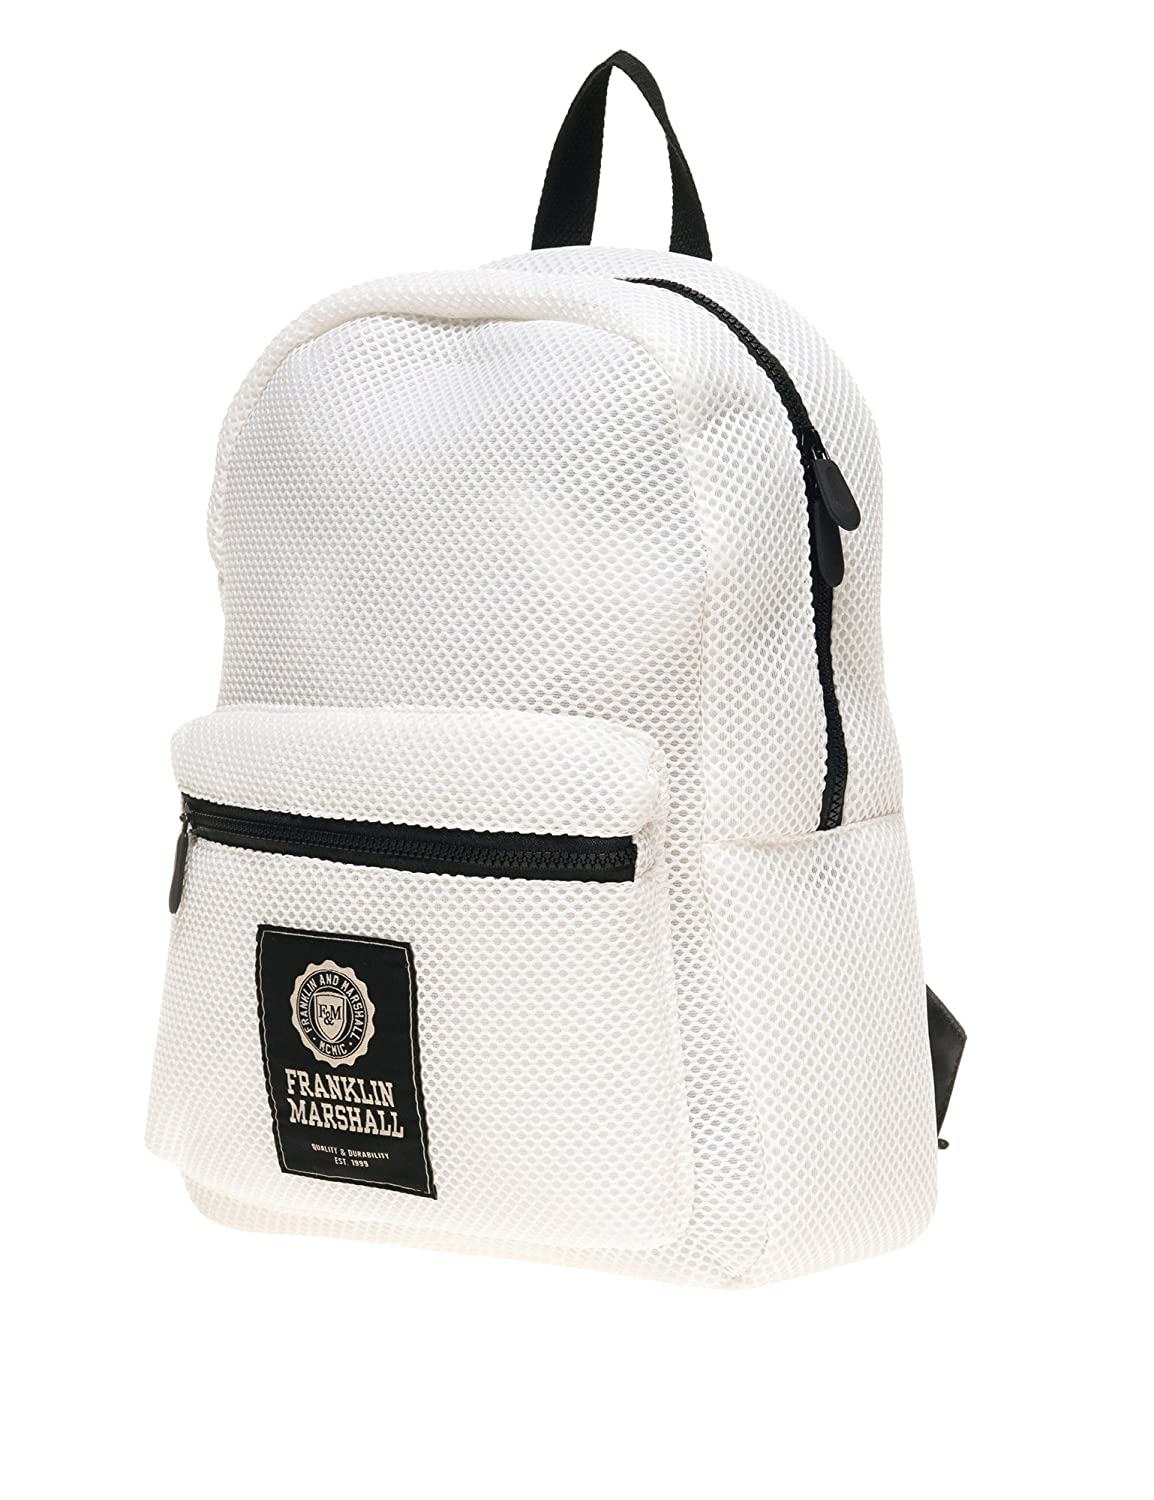 Franklin   Marshall UA968 Polyester White Bag One Size  Amazon.co.uk  Shoes    Bags 60c5d557a2547